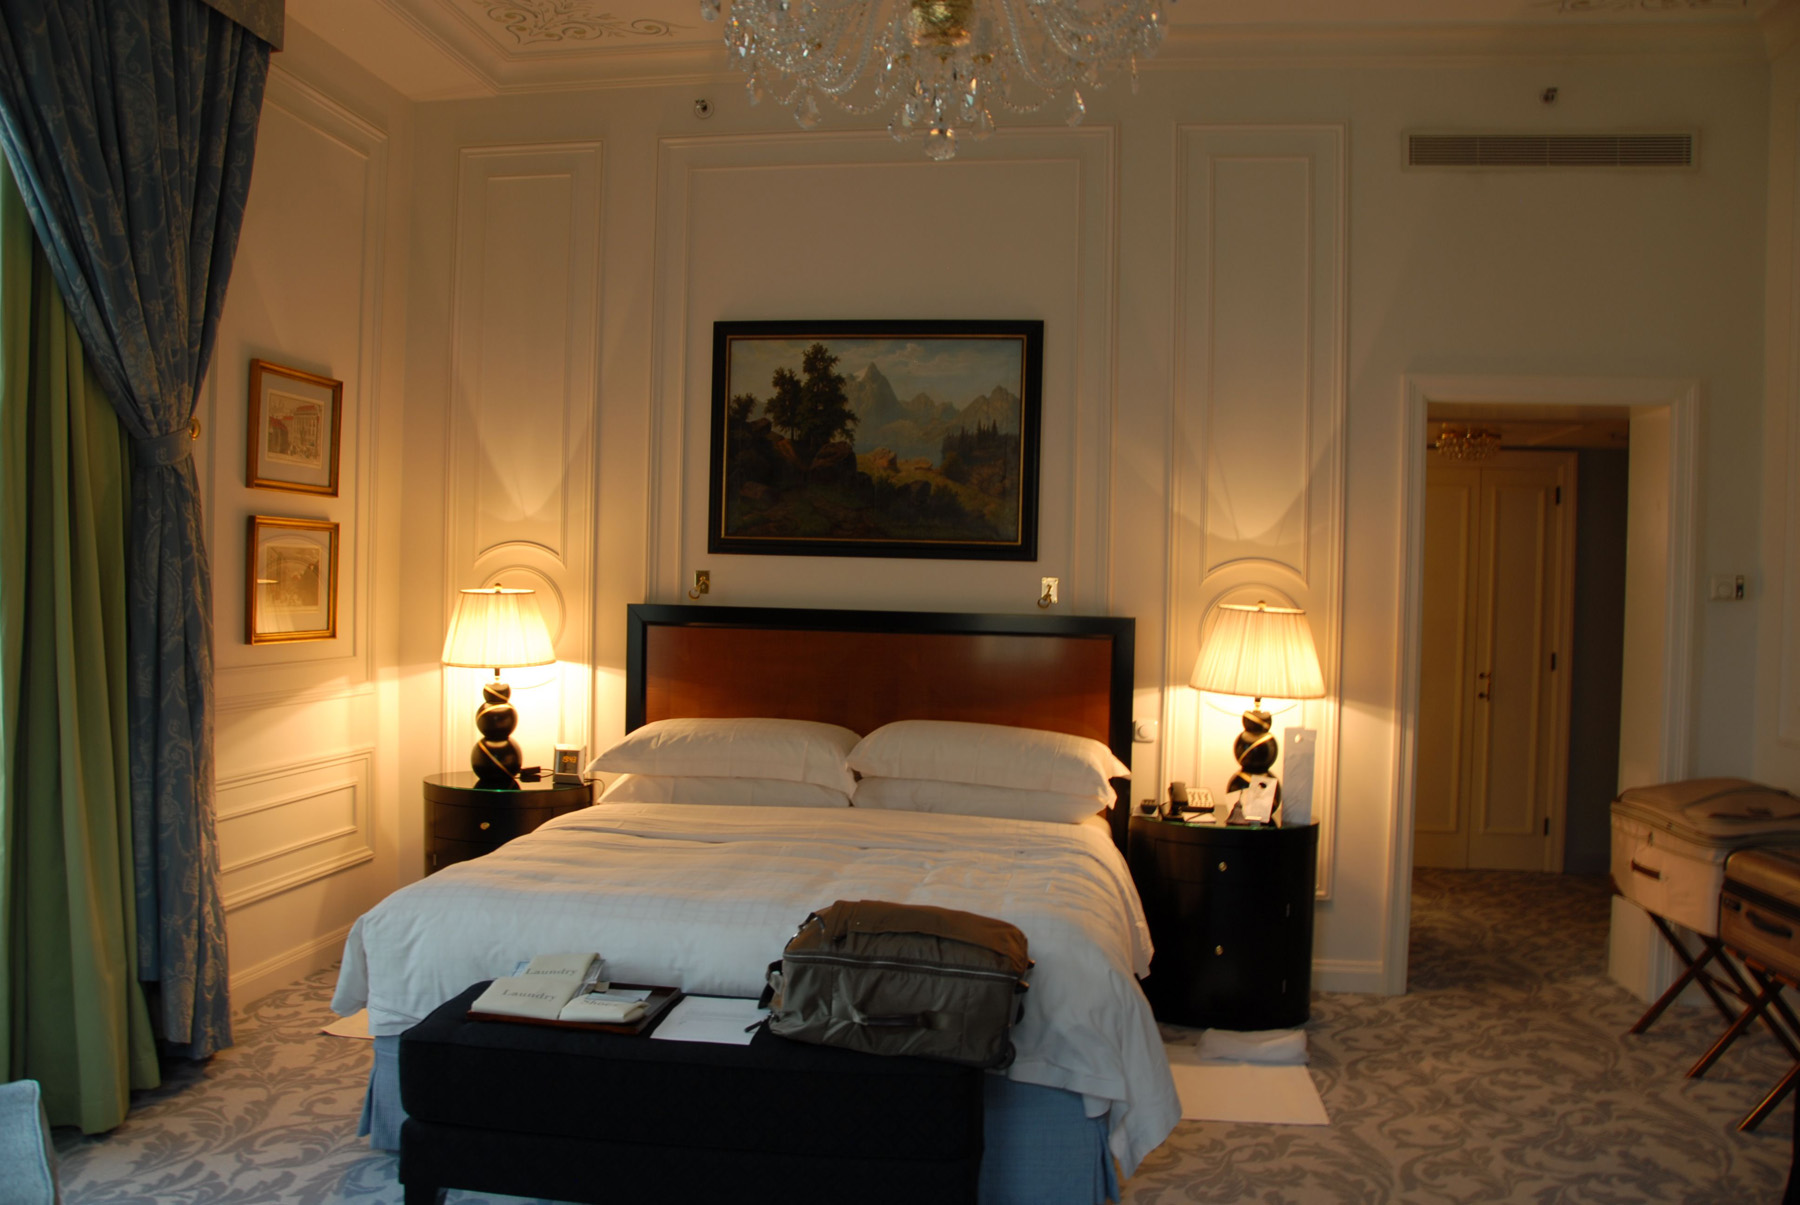 Our room at the Four Seasons Prague